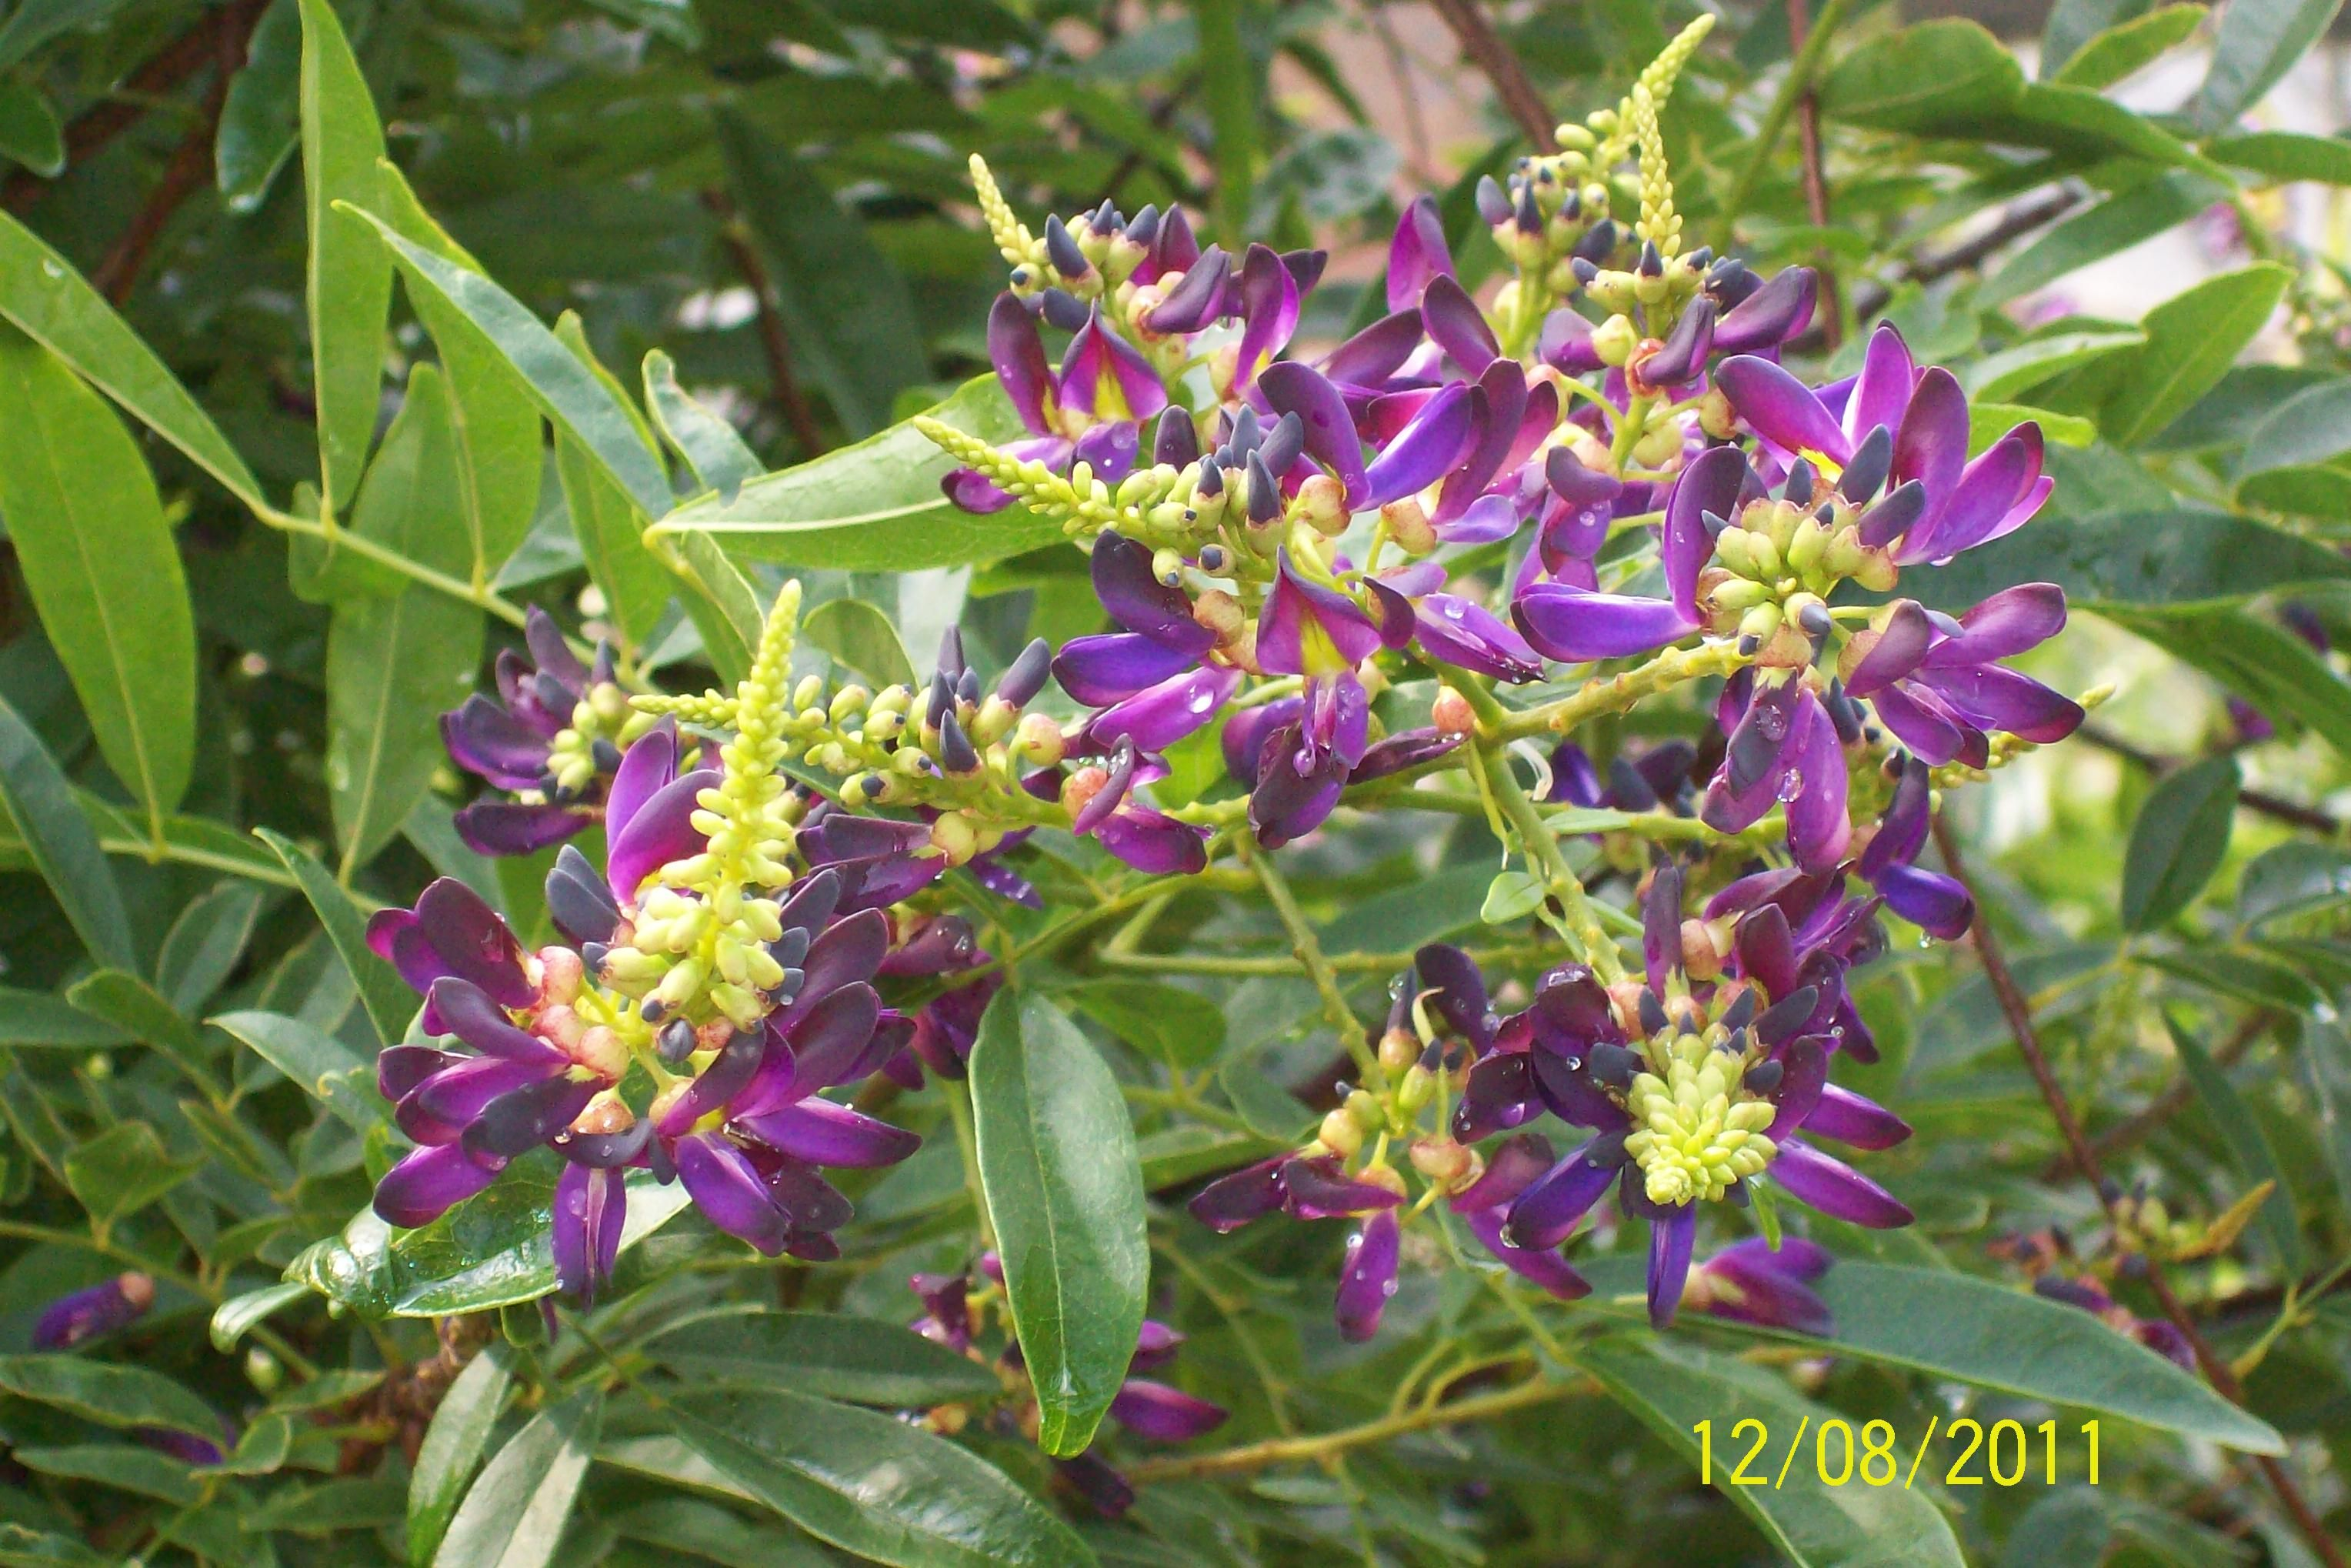 This Is The Evergreen Wisteria Vine Not Any Kin To The Reg Wisteria It Blooms In The Summer For A Long Time Flowers Shrubs Plants